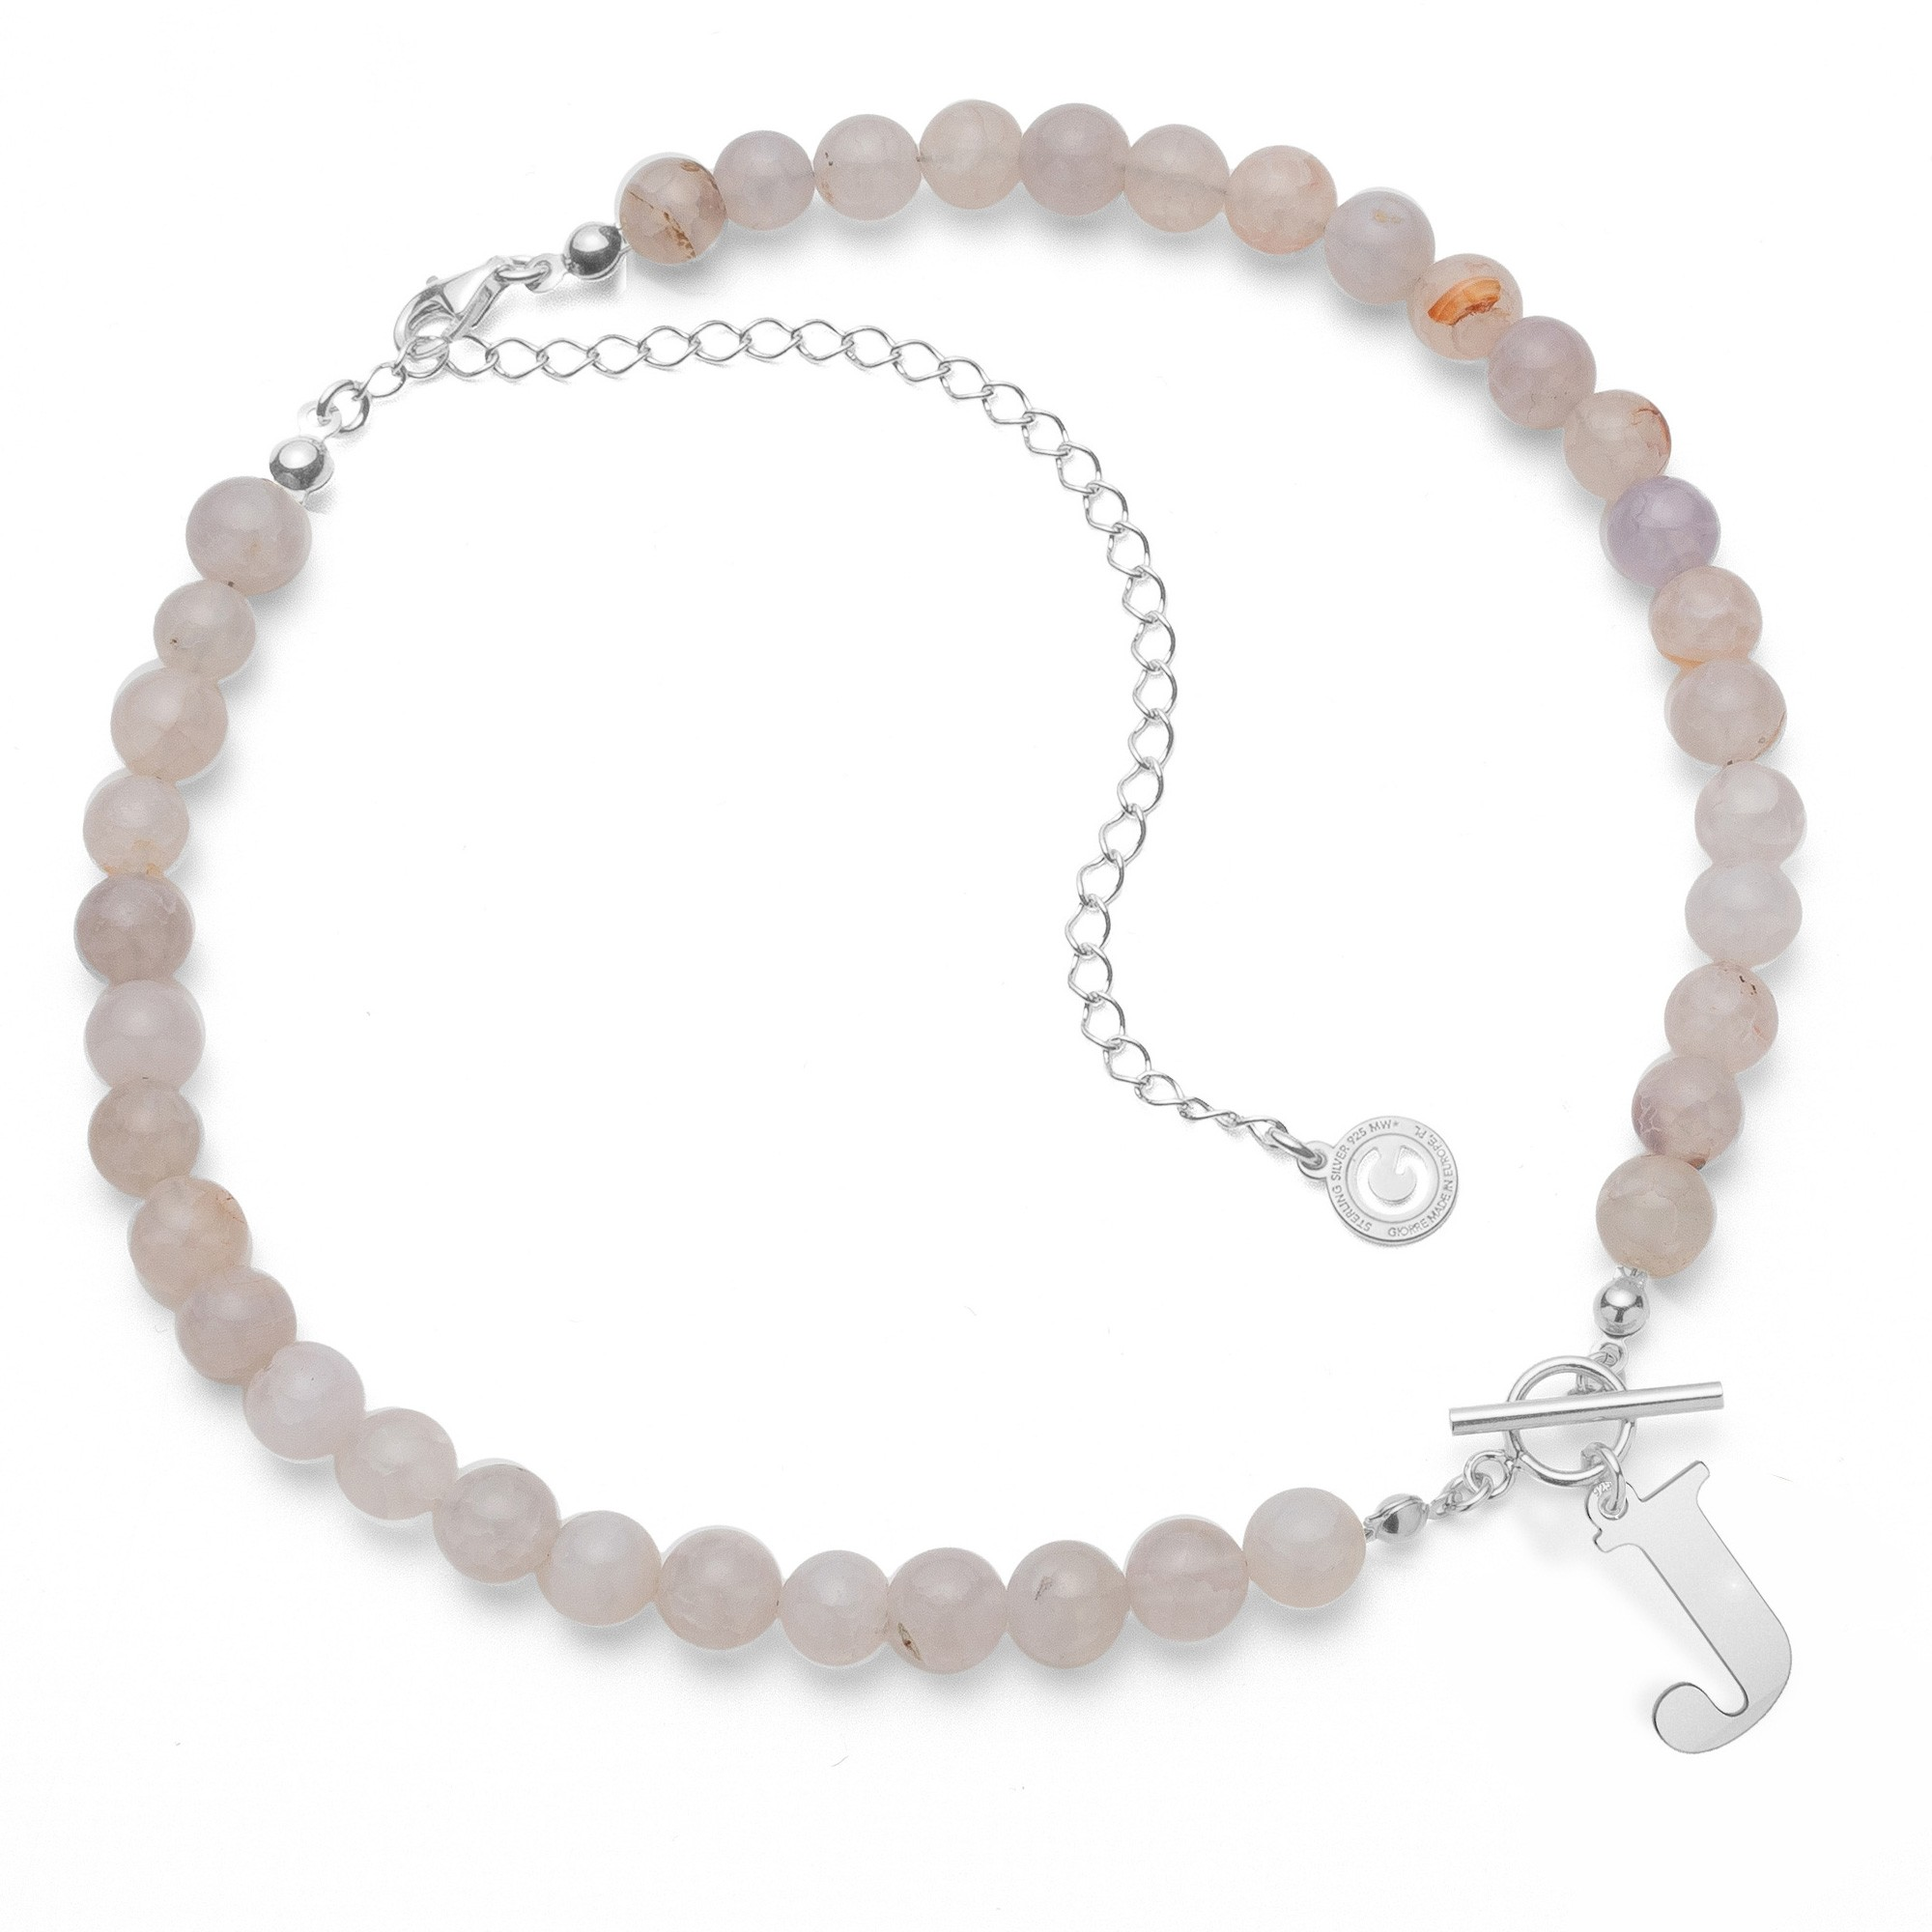 White natural stones agate choker with letter, Silver 925